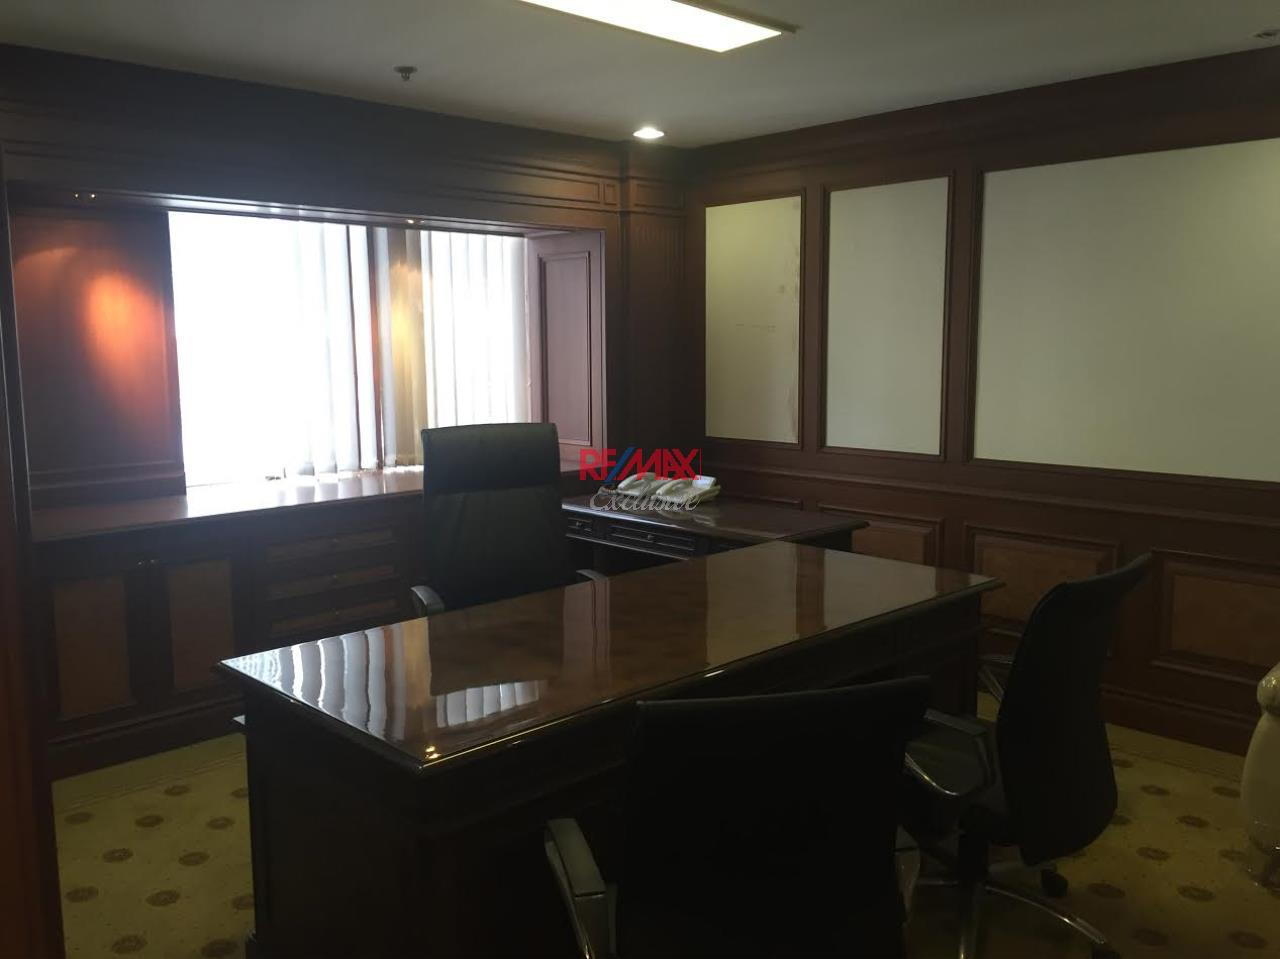 RE/MAX Exclusive Agency's PS Tower Office Space for Rent in Downtown of Sukhumvit 225,000/ month   3